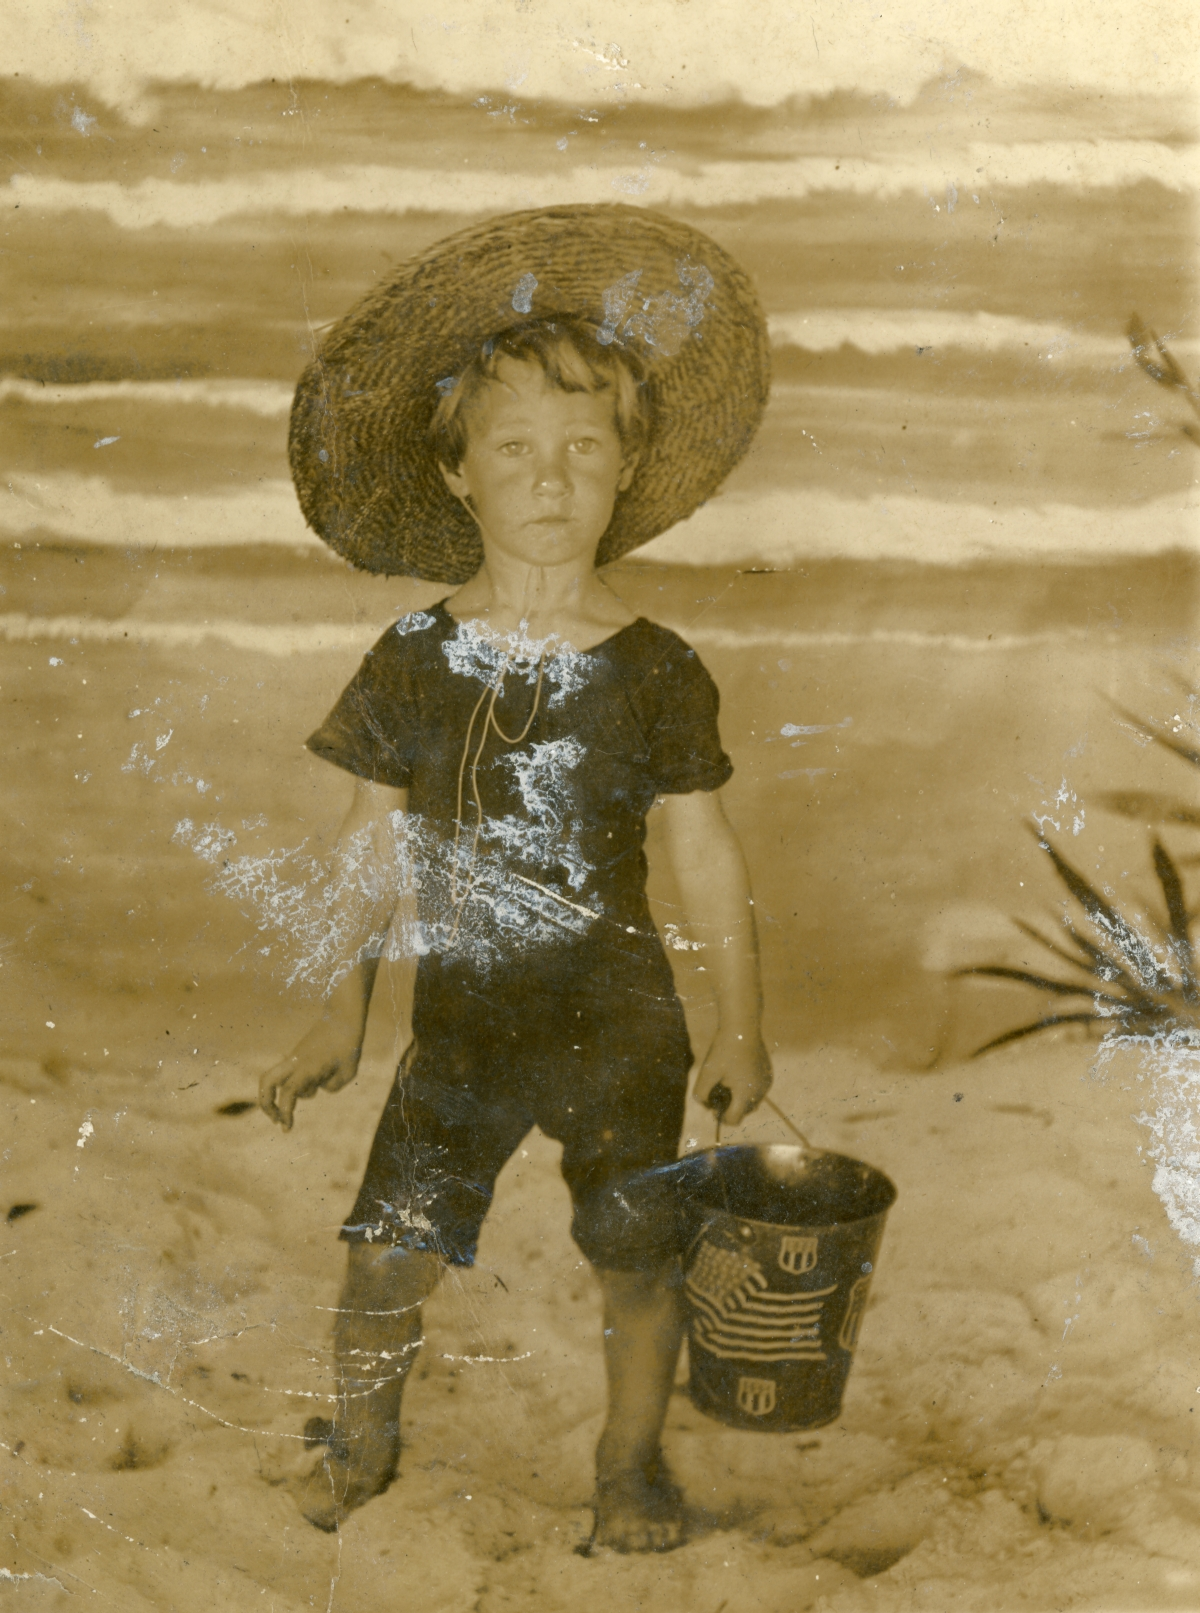 Coleman Dixon, age 2, at the beach.